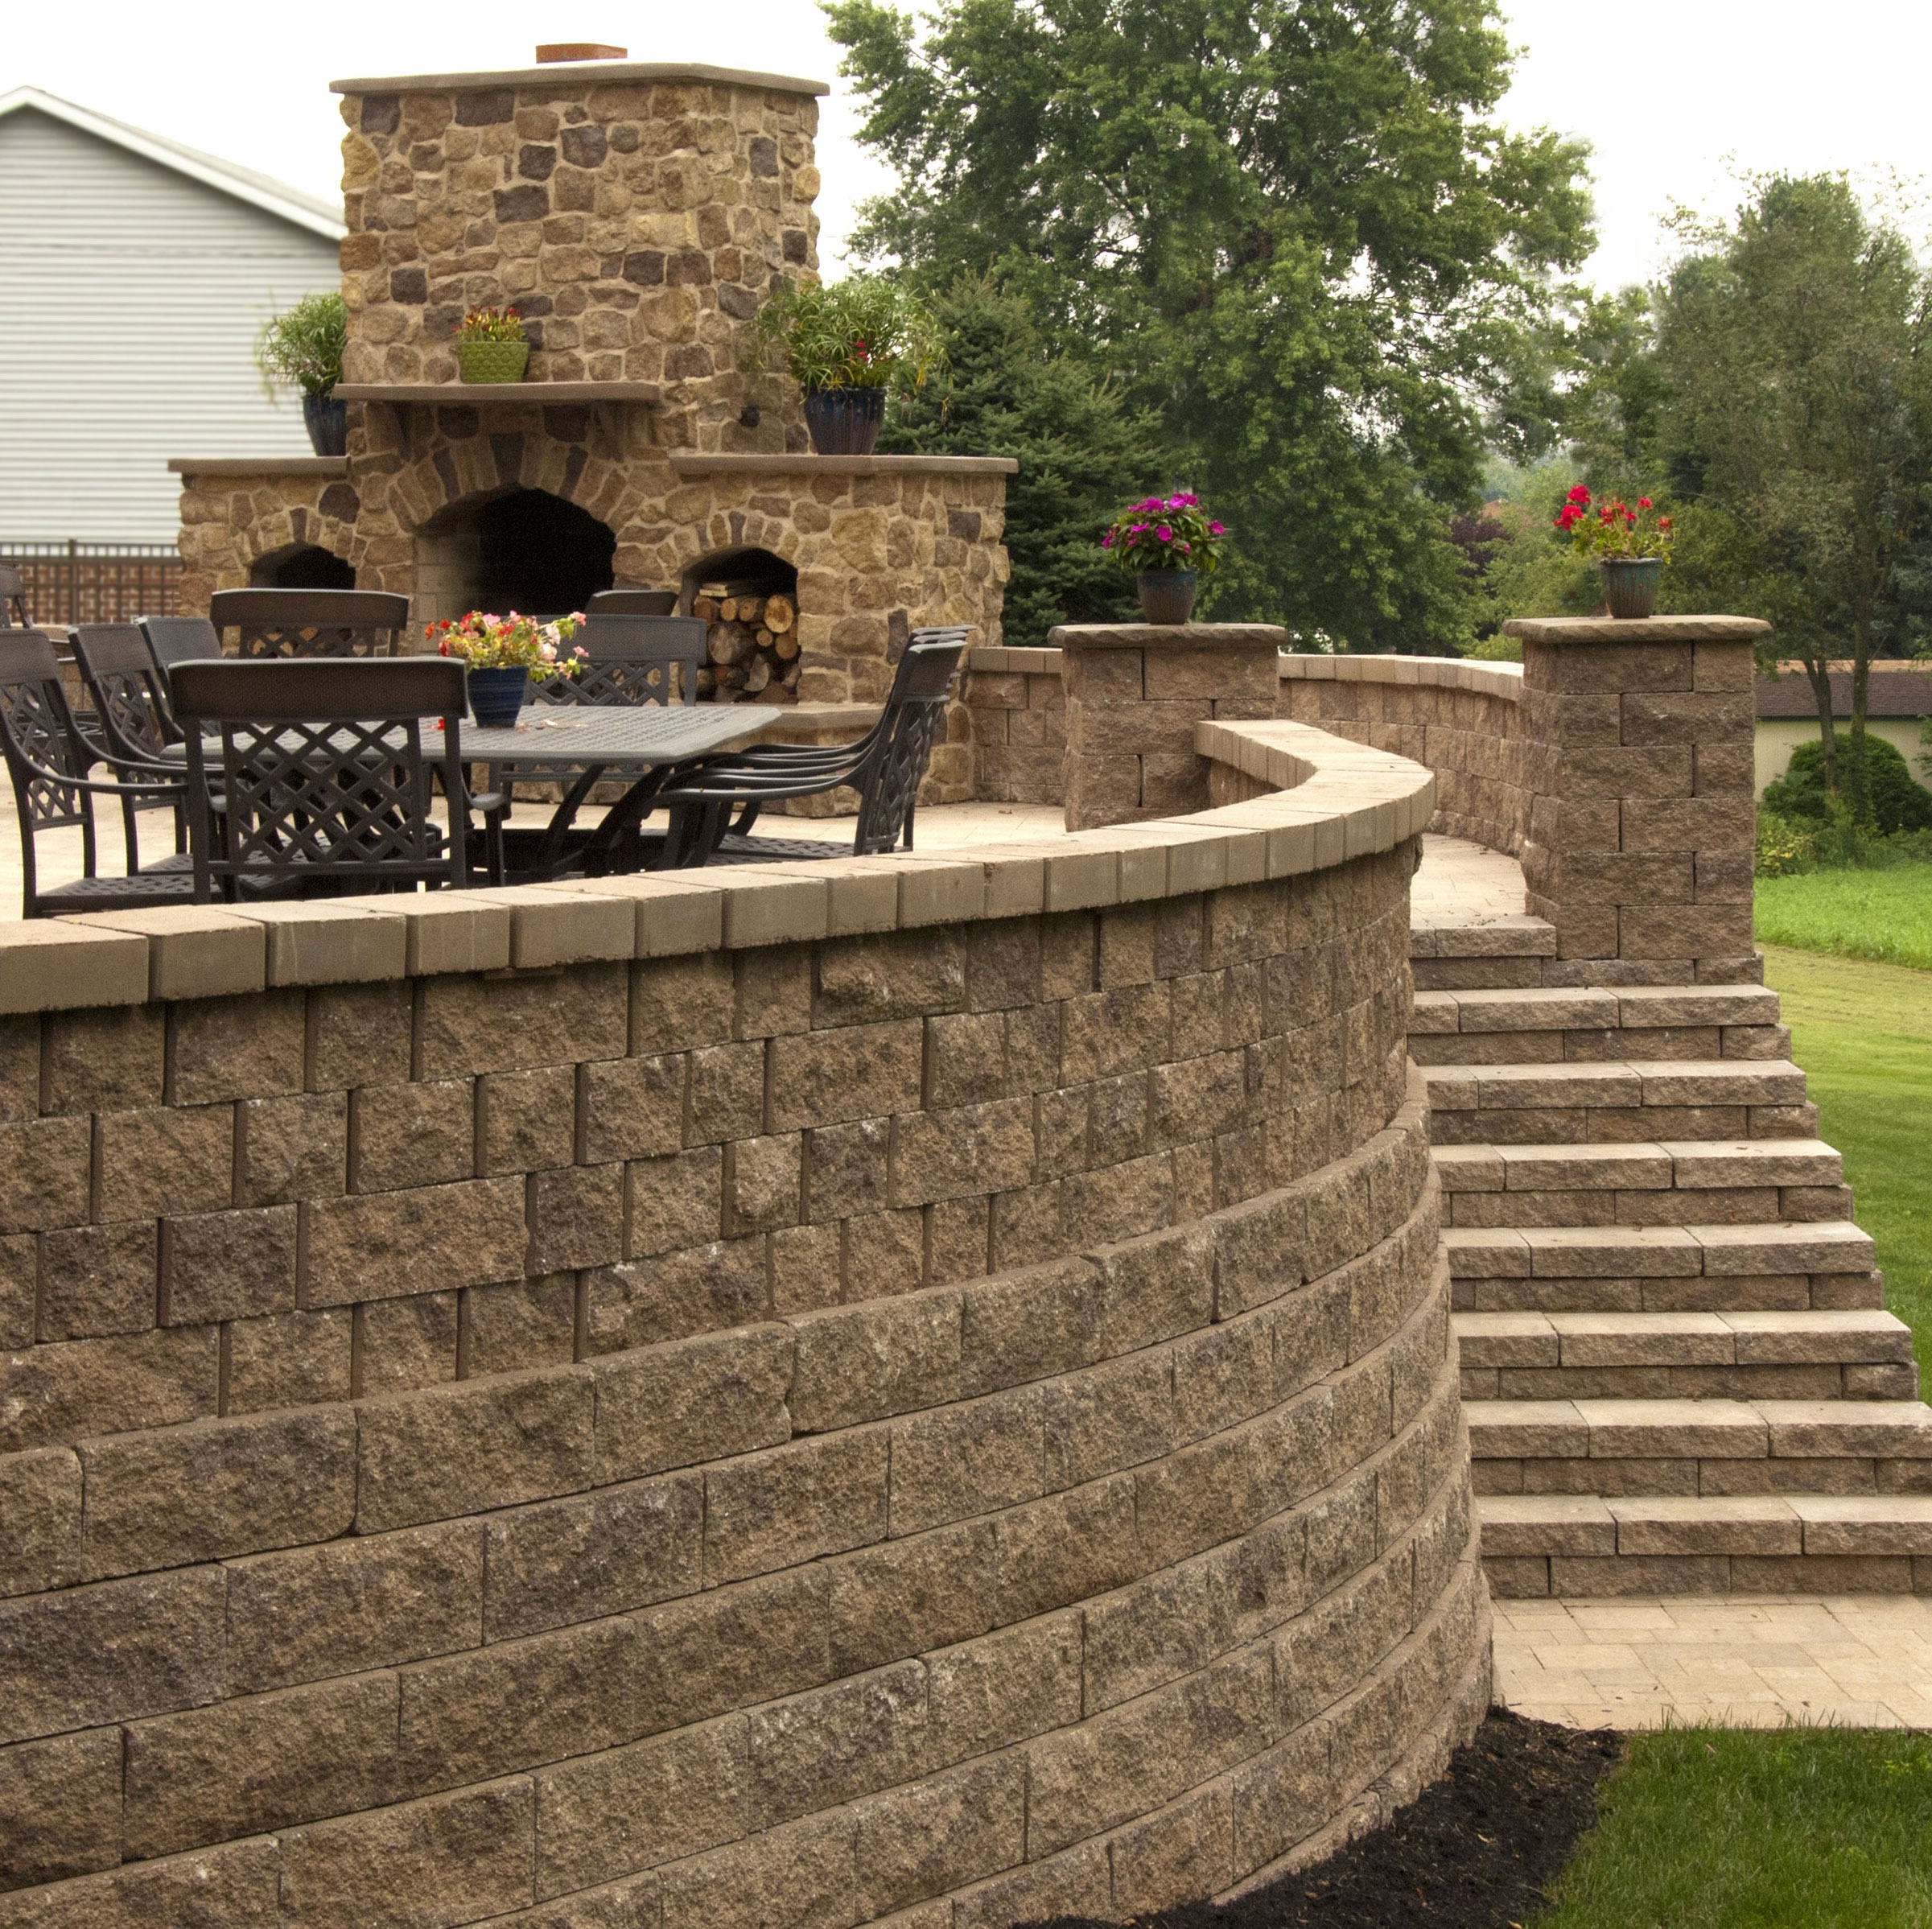 patio, stairs, two-sided walls, retaining wall, courtyard